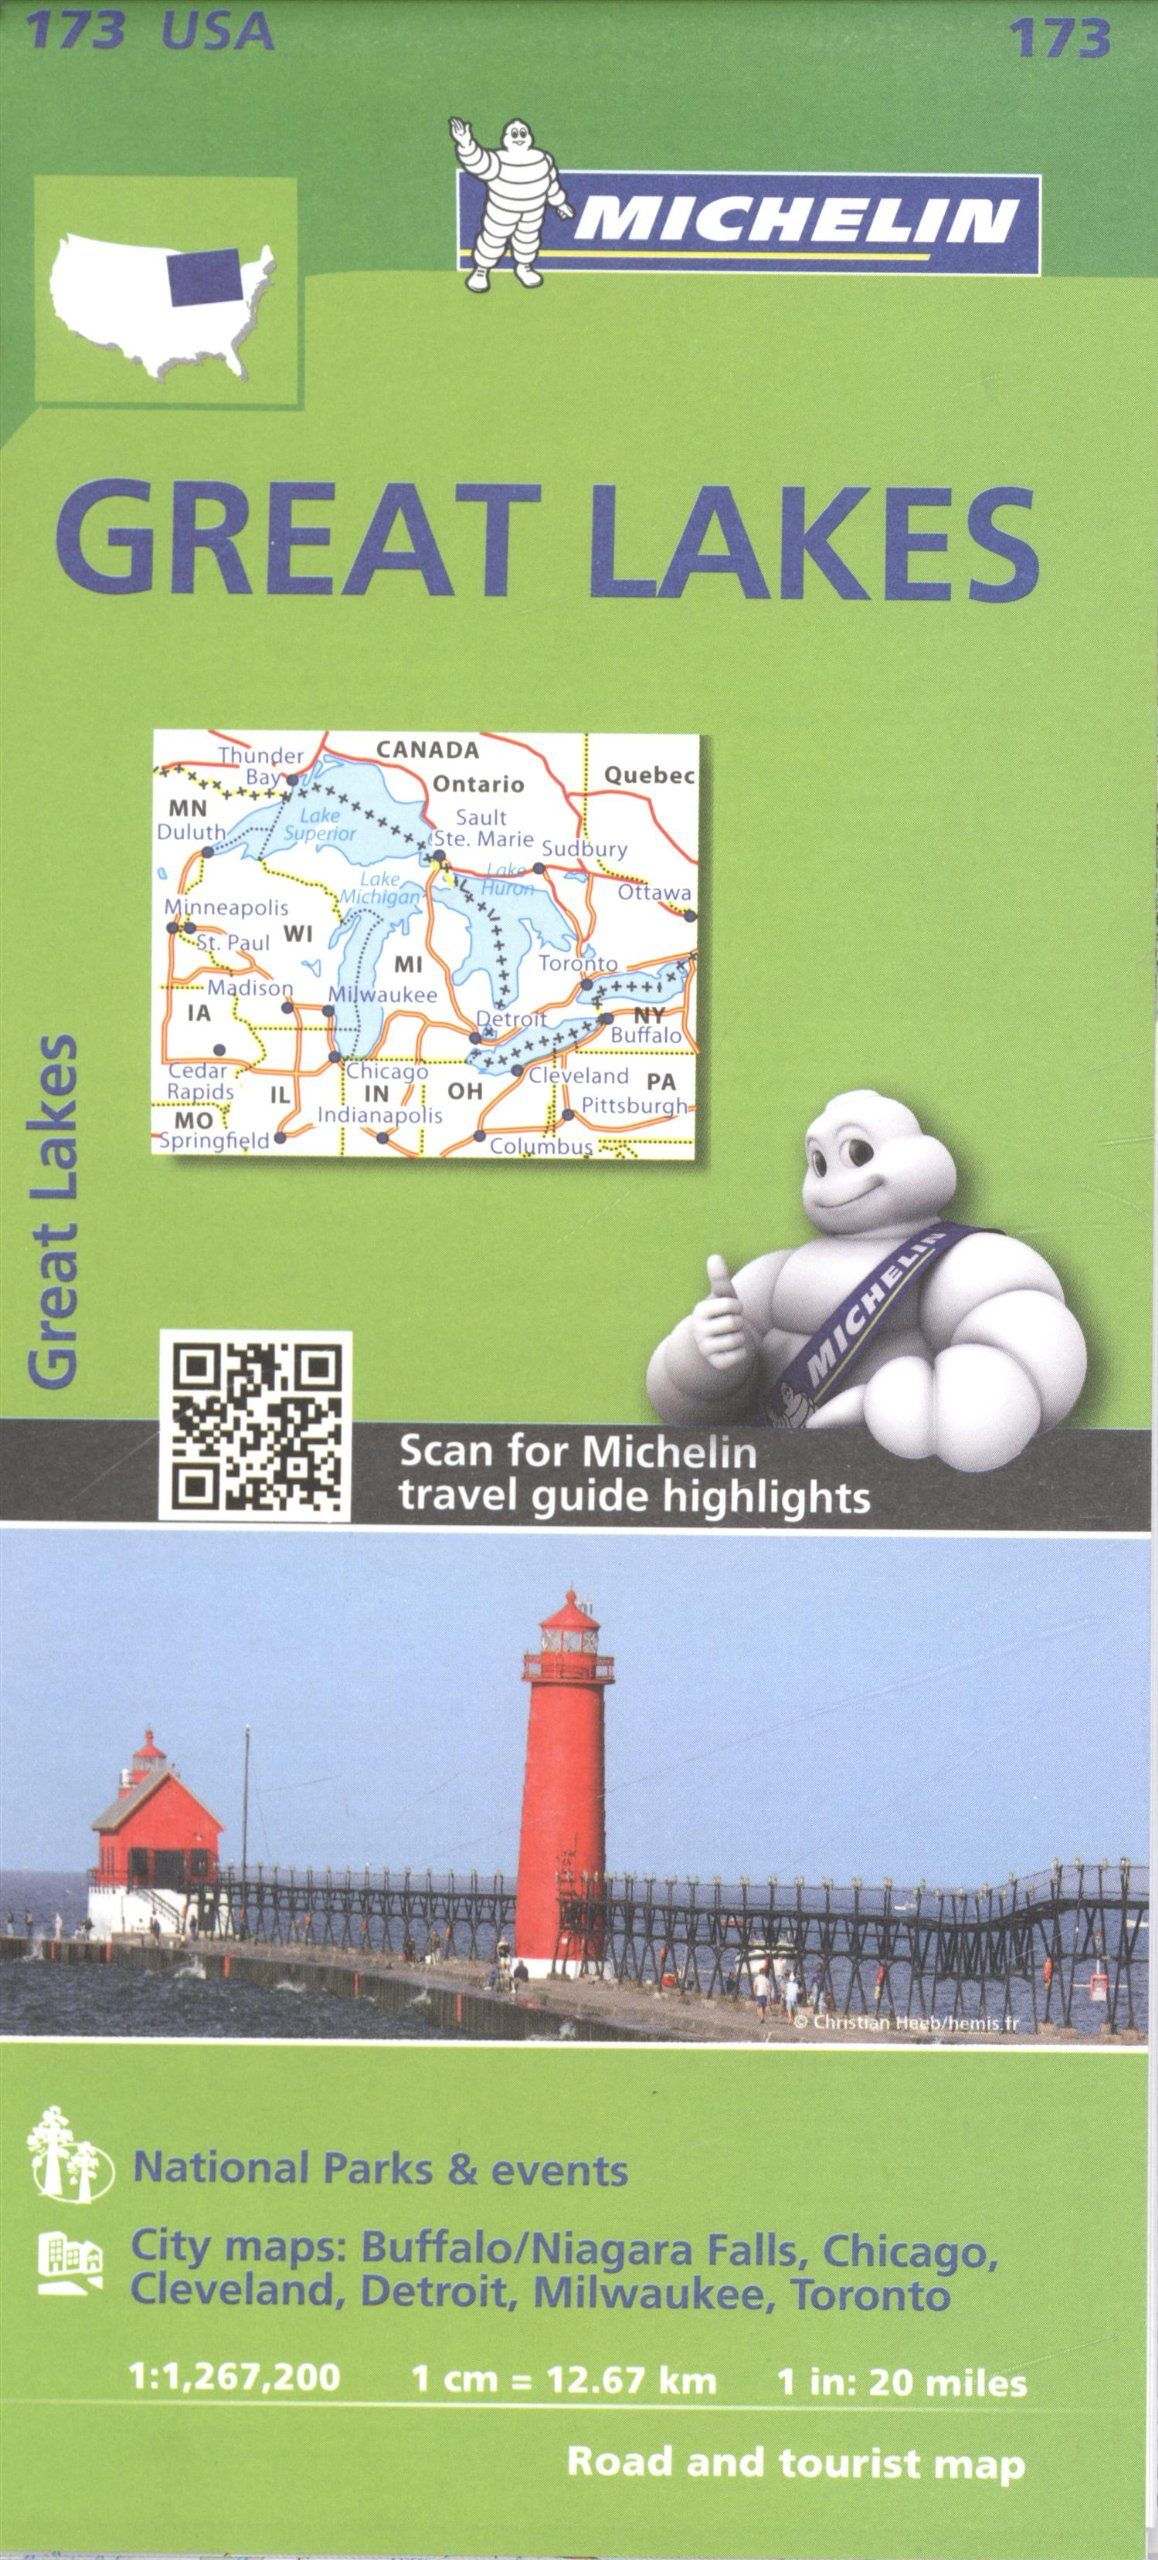 Map Of Usa Great Lakes.Michelin Usa Great Lakes Map 173 Michelin Zoom Usa Maps Michelin